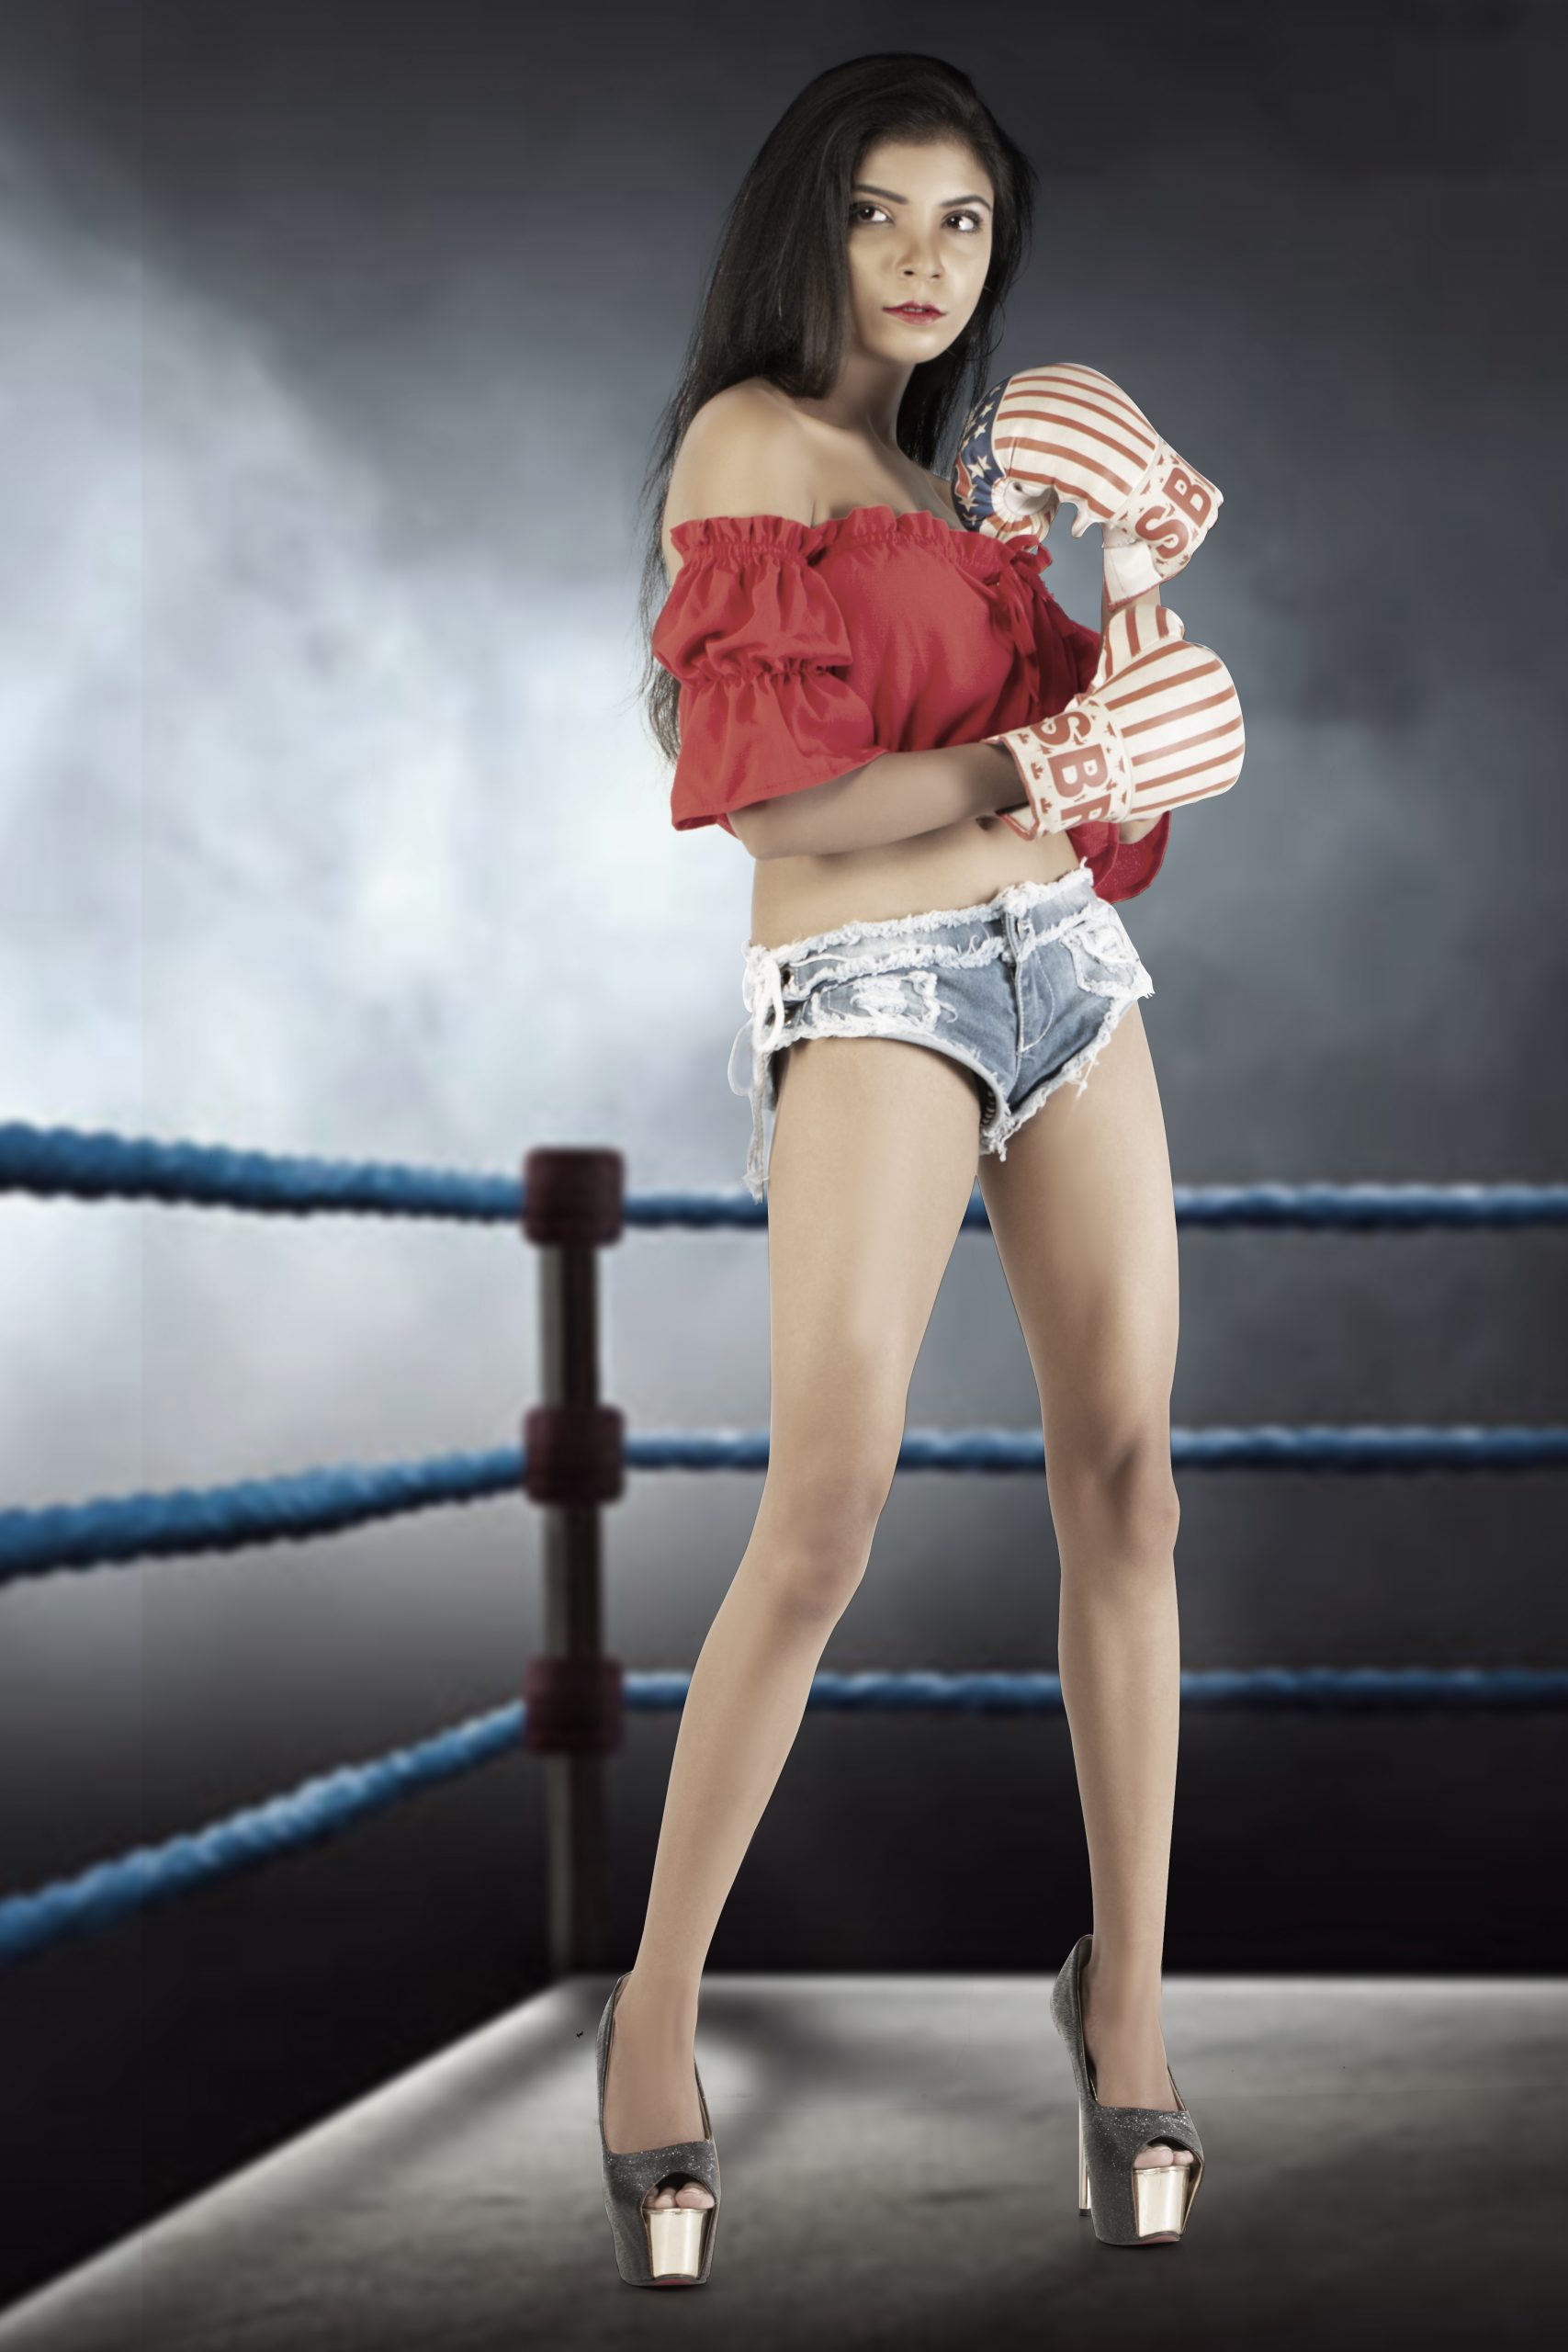 A girl in boxing ring